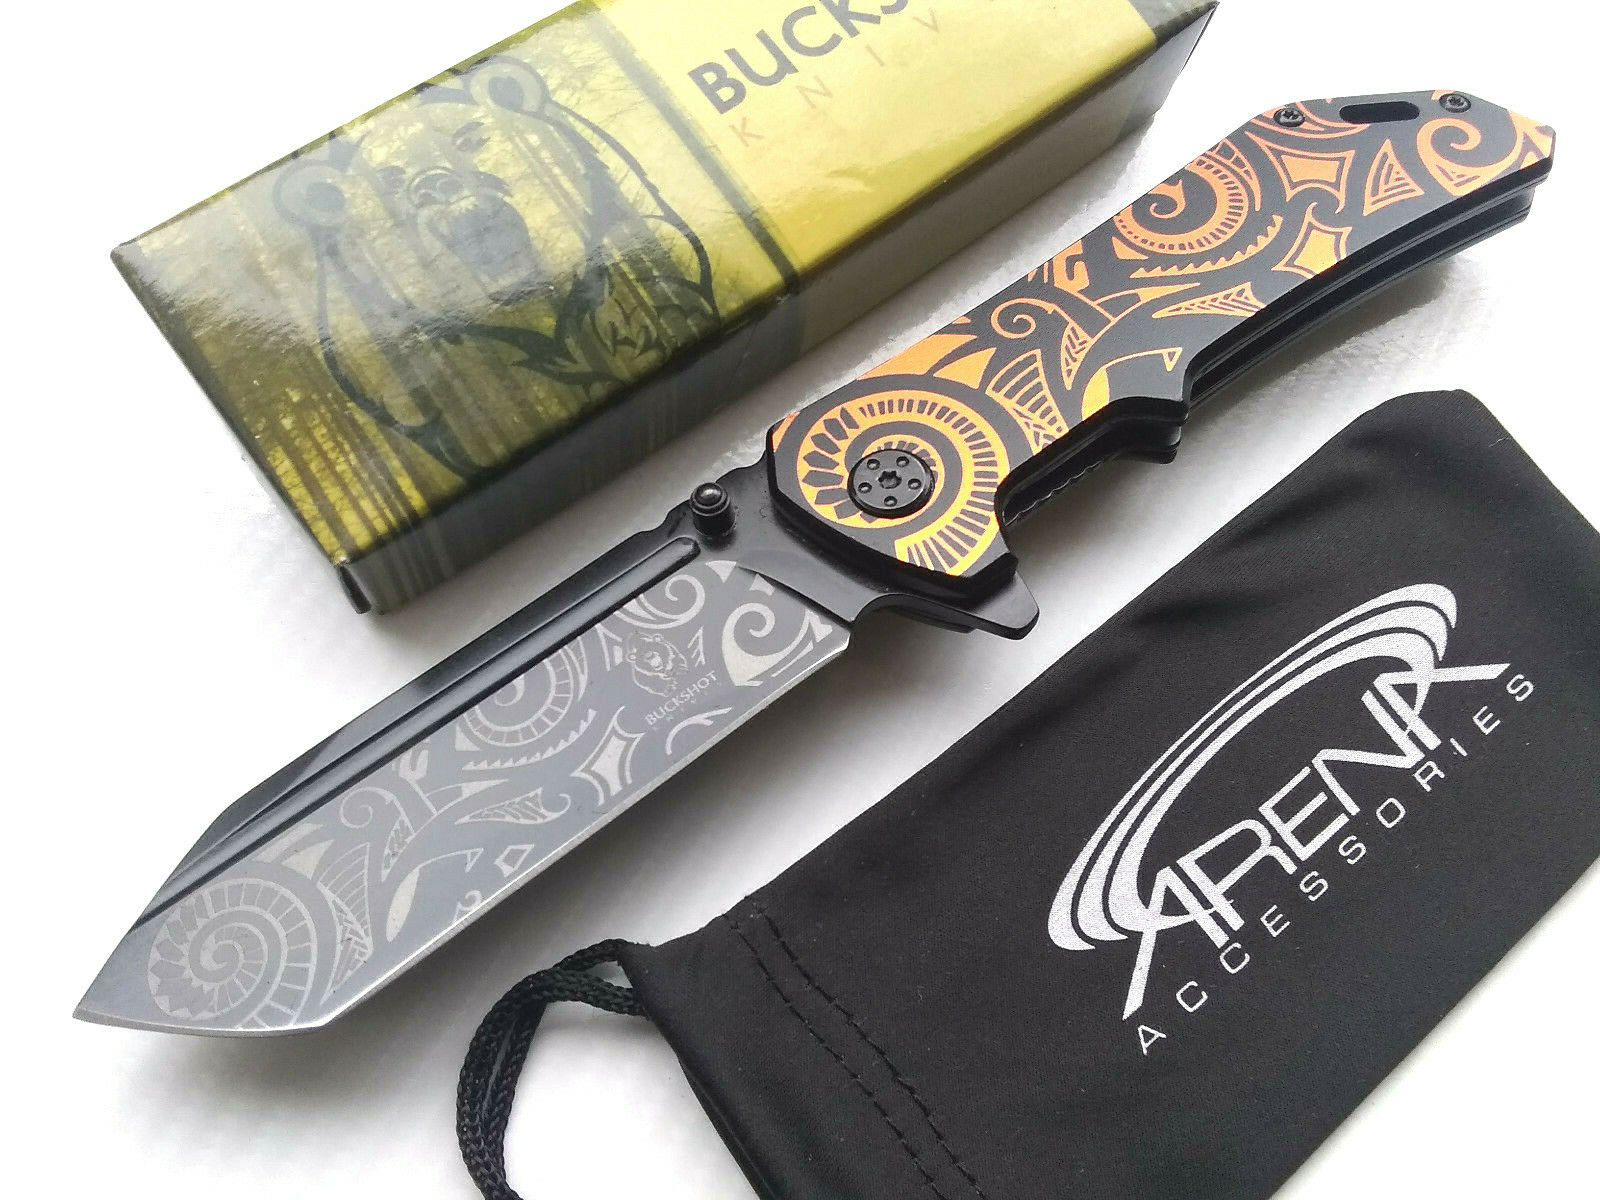 Buckshot Tribal Orange & Black Metallic Spring Assisted Pocket Knife EDC Tanto Flipper Blade